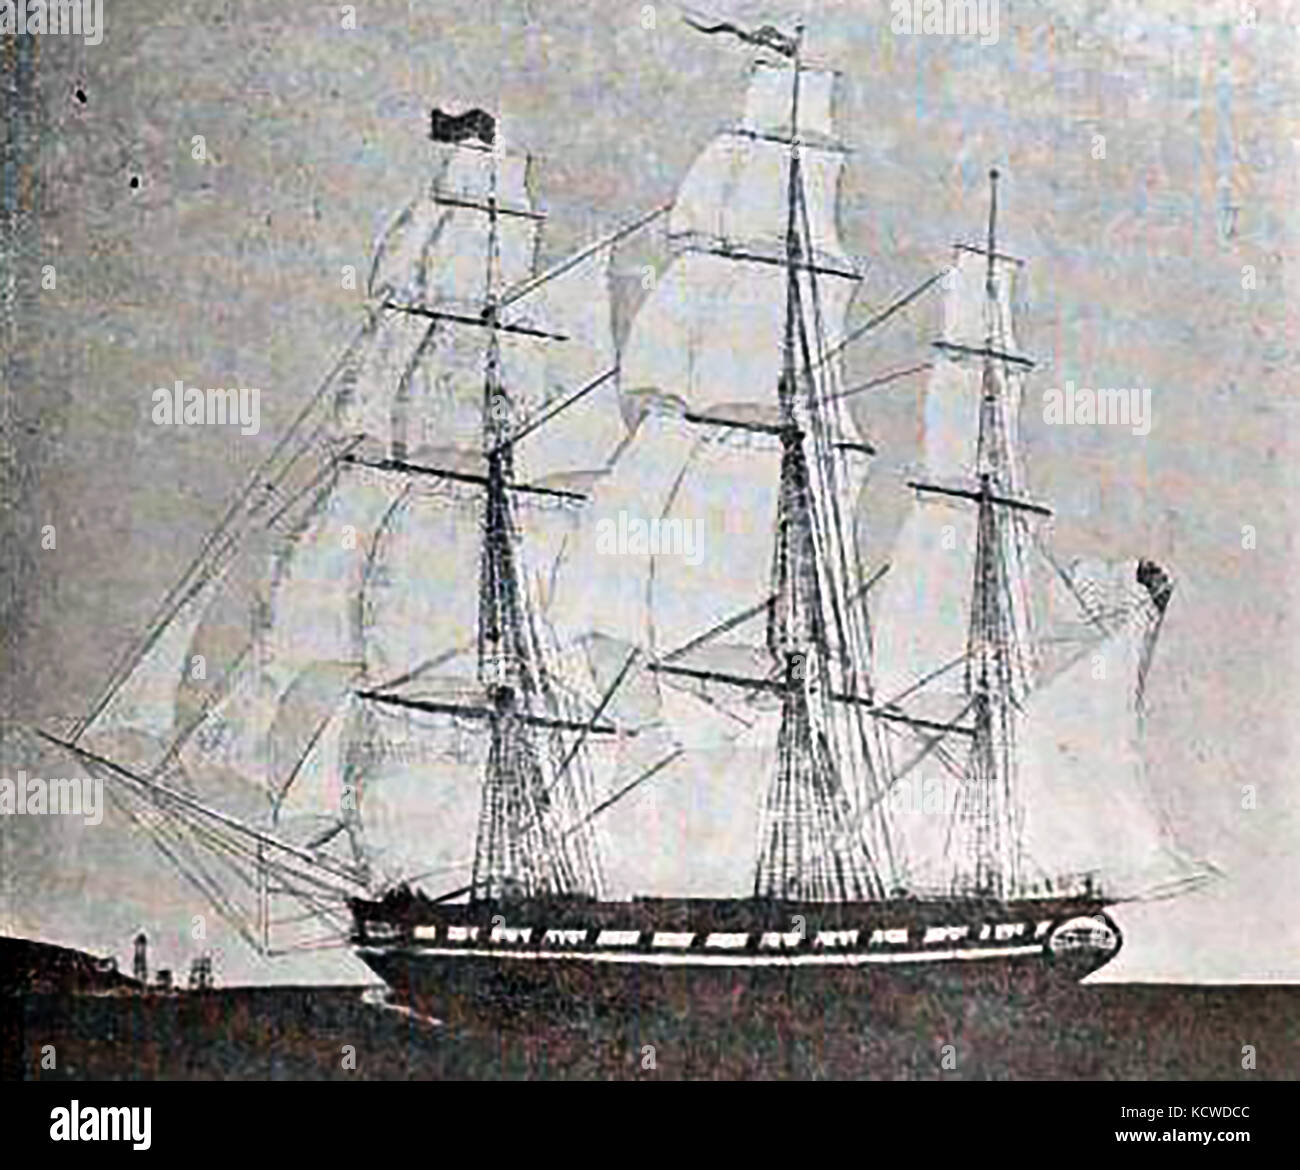 The ship  ANN AND  HOPE built by Benjamin Tallman in 1798 for Brown  & Ives of Providence, Rhode Island , USA - Stock Image